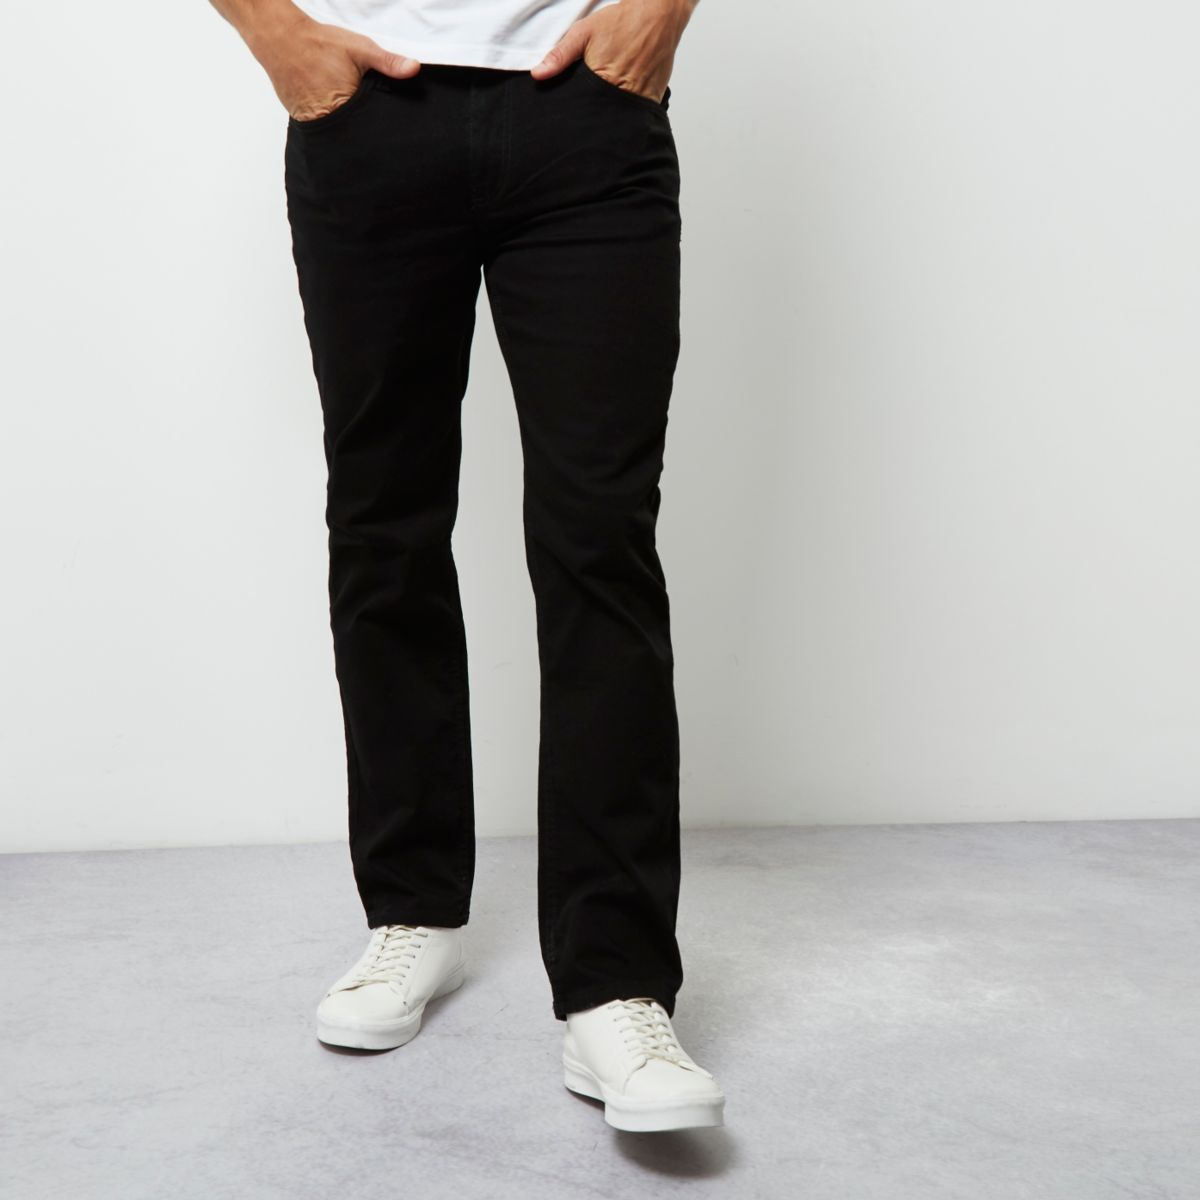 Men's straight leg jeans Our most popular style for men, the straight leg jean sits comfortably on the waist and is cut straight down to the hem. A contemporary option for both casual and smart occasions, this classic silhouette is available in a range of black, blue and grey shades.